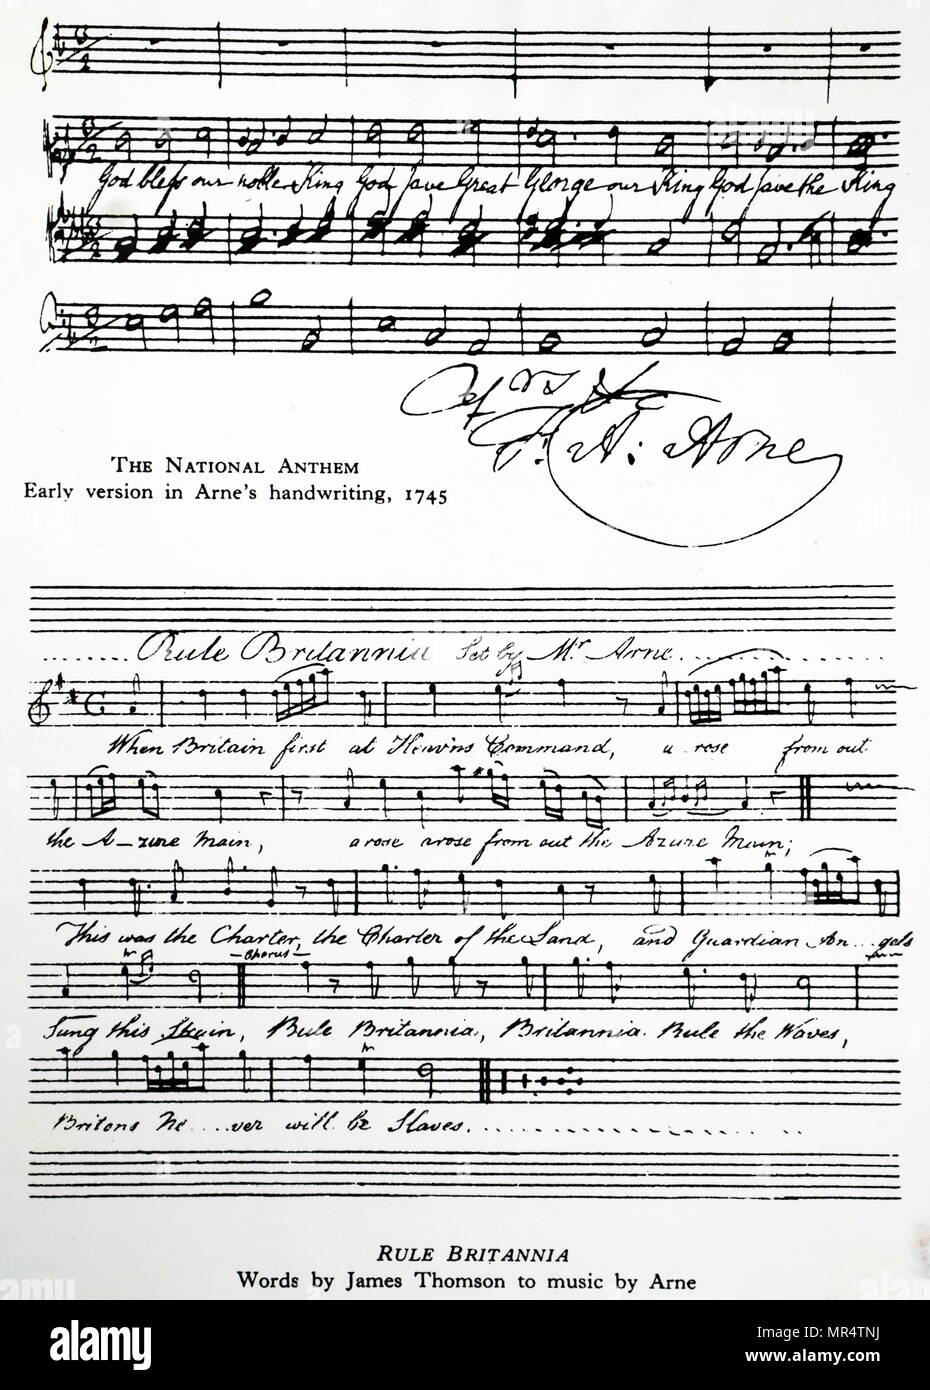 Sheet music for the British National Anthem and Rule Britannia composed by Thomas Arne. Thomas Arne (1710-1778) an English composer. Dated 18th century - Stock Image